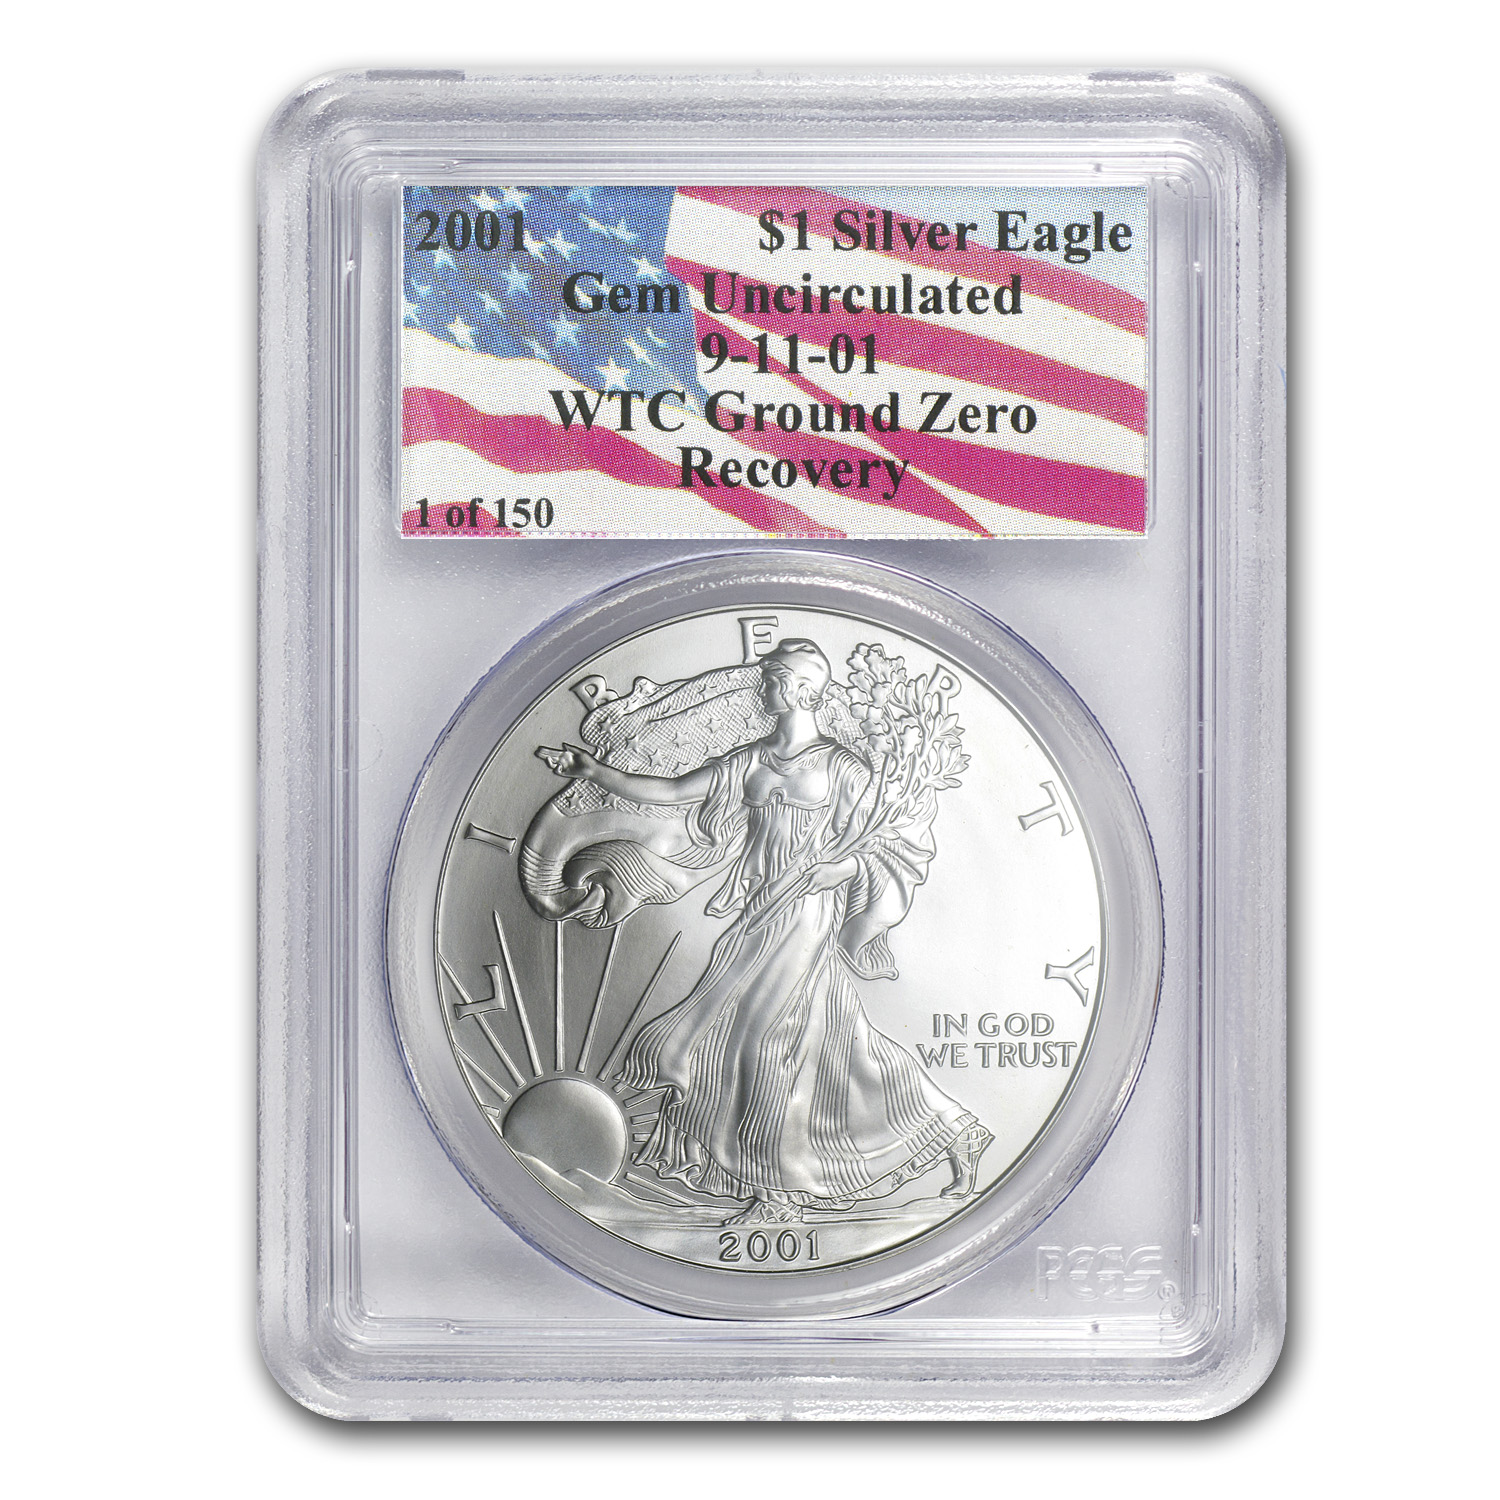 2001 Silver American Eagle Gem Unc PCGS (1 of 150, WTC)